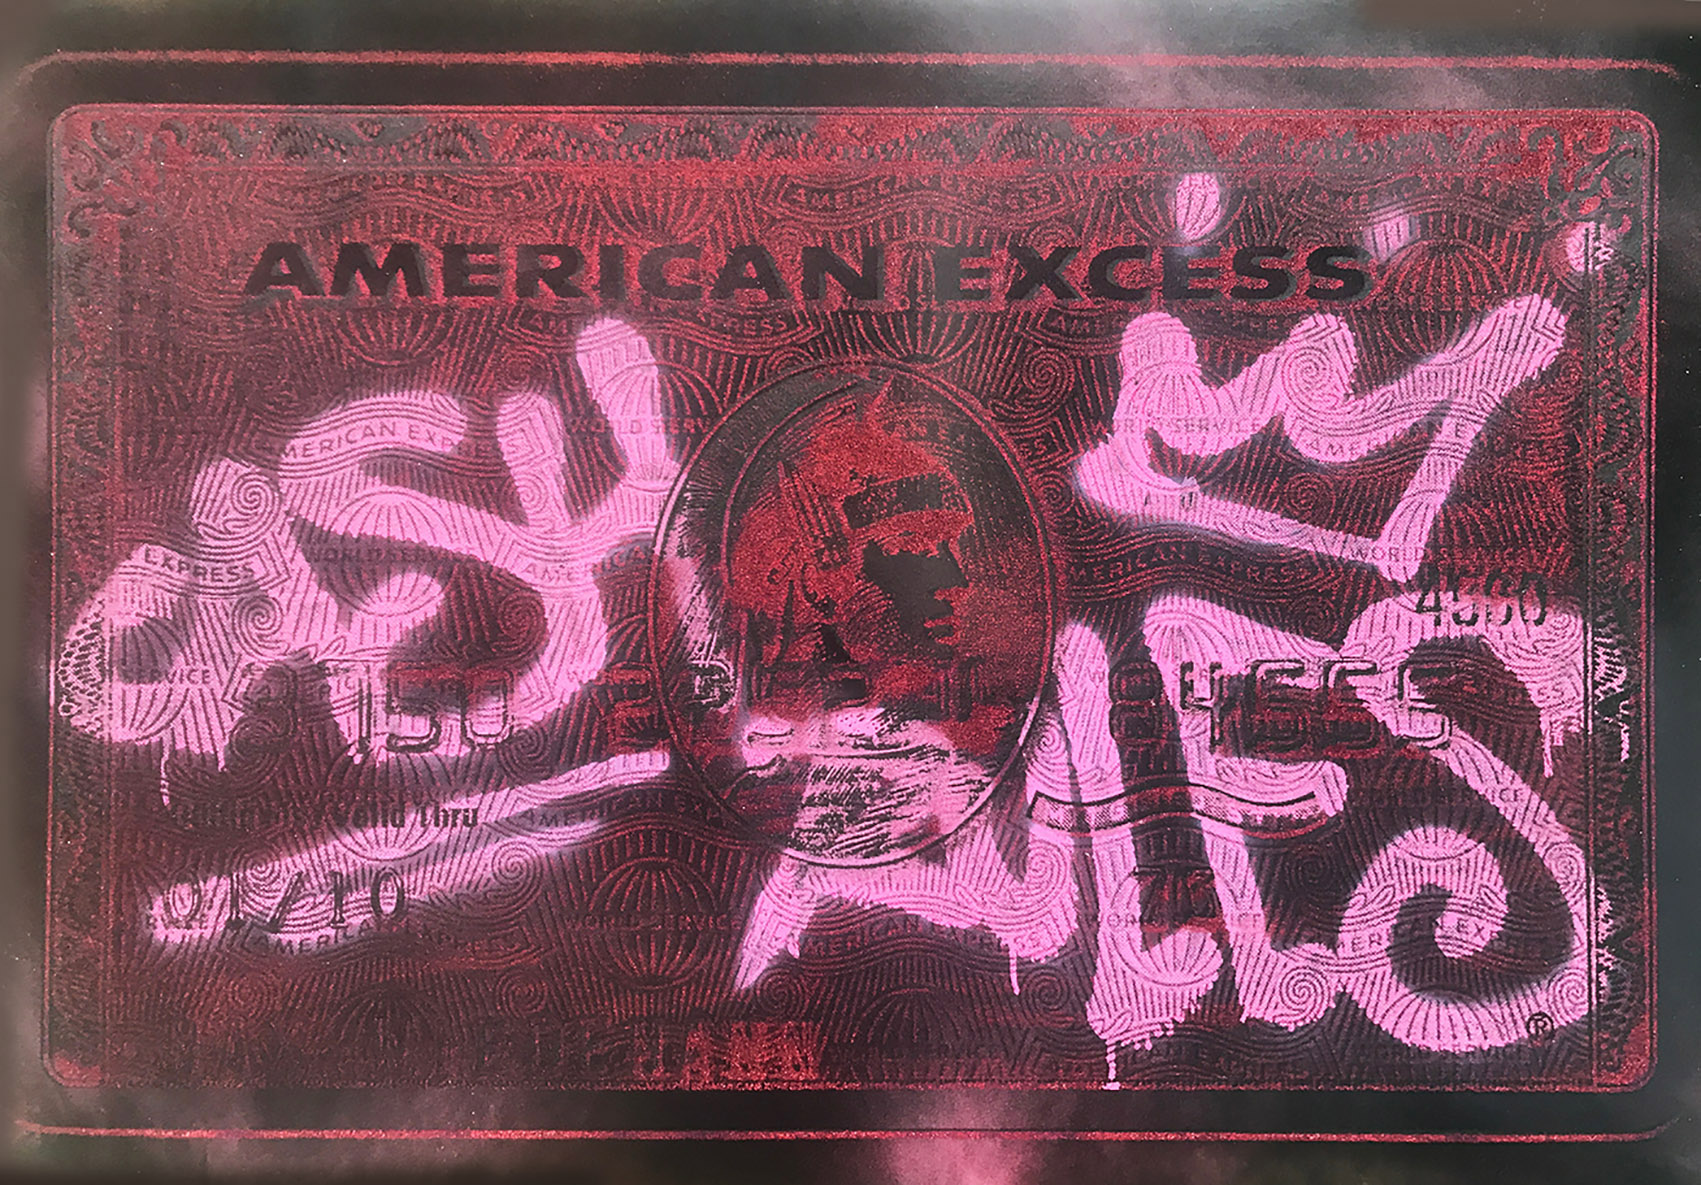 American Excess